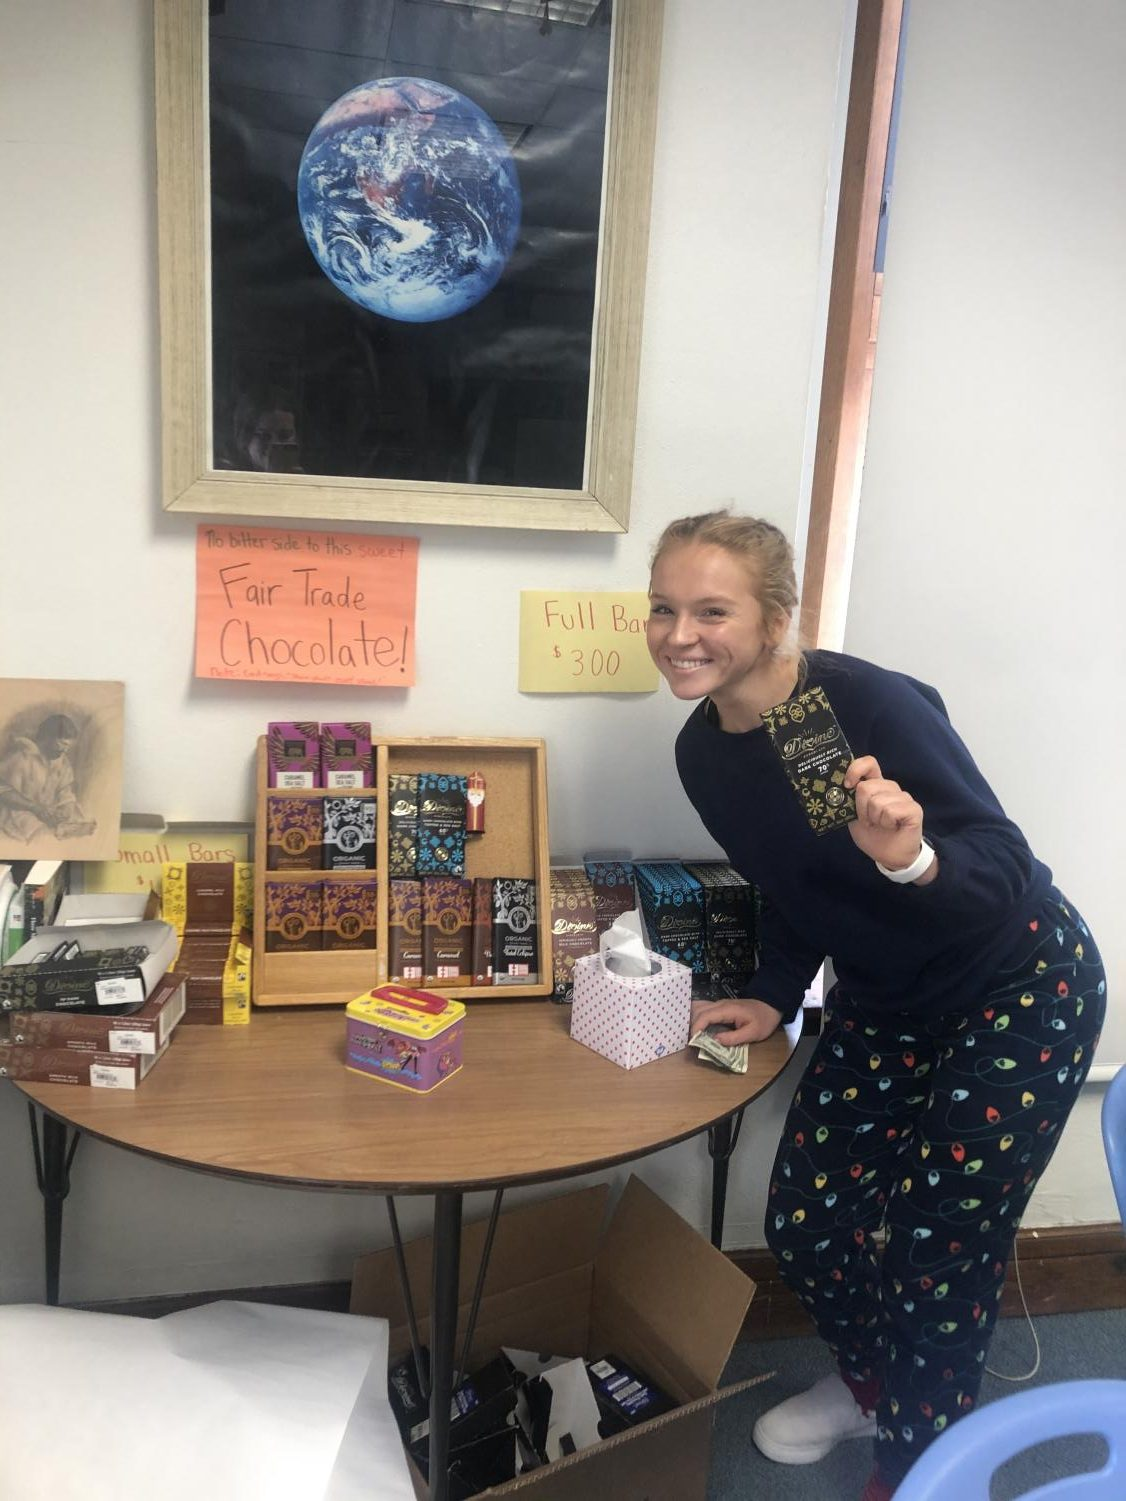 Maren Stewart at the fair trade display in Mrs. H-P's room